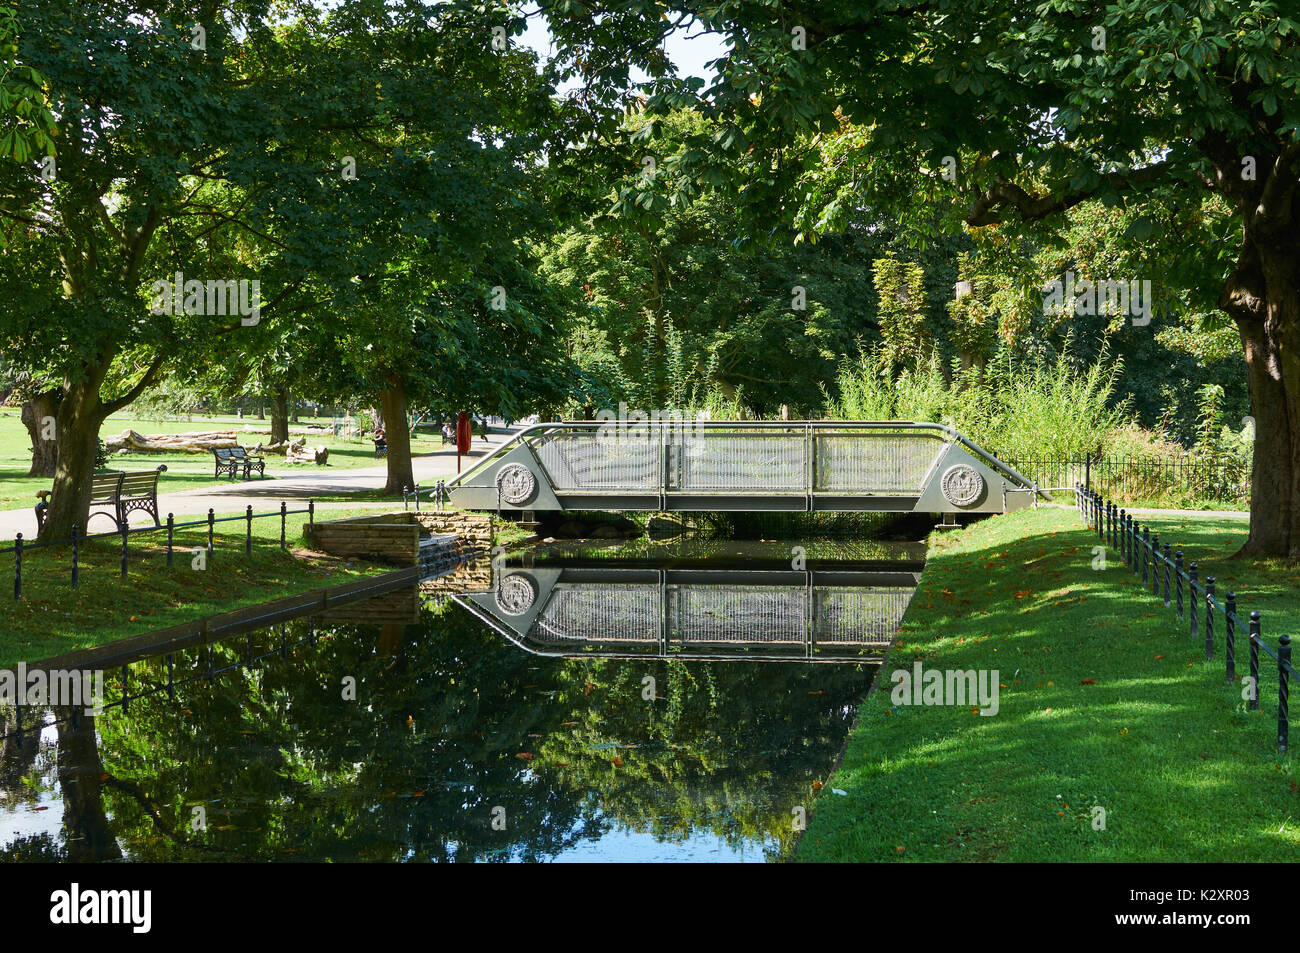 Bridge over the New River at Clissold Park, Stoke Newington, North London UK - Stock Image